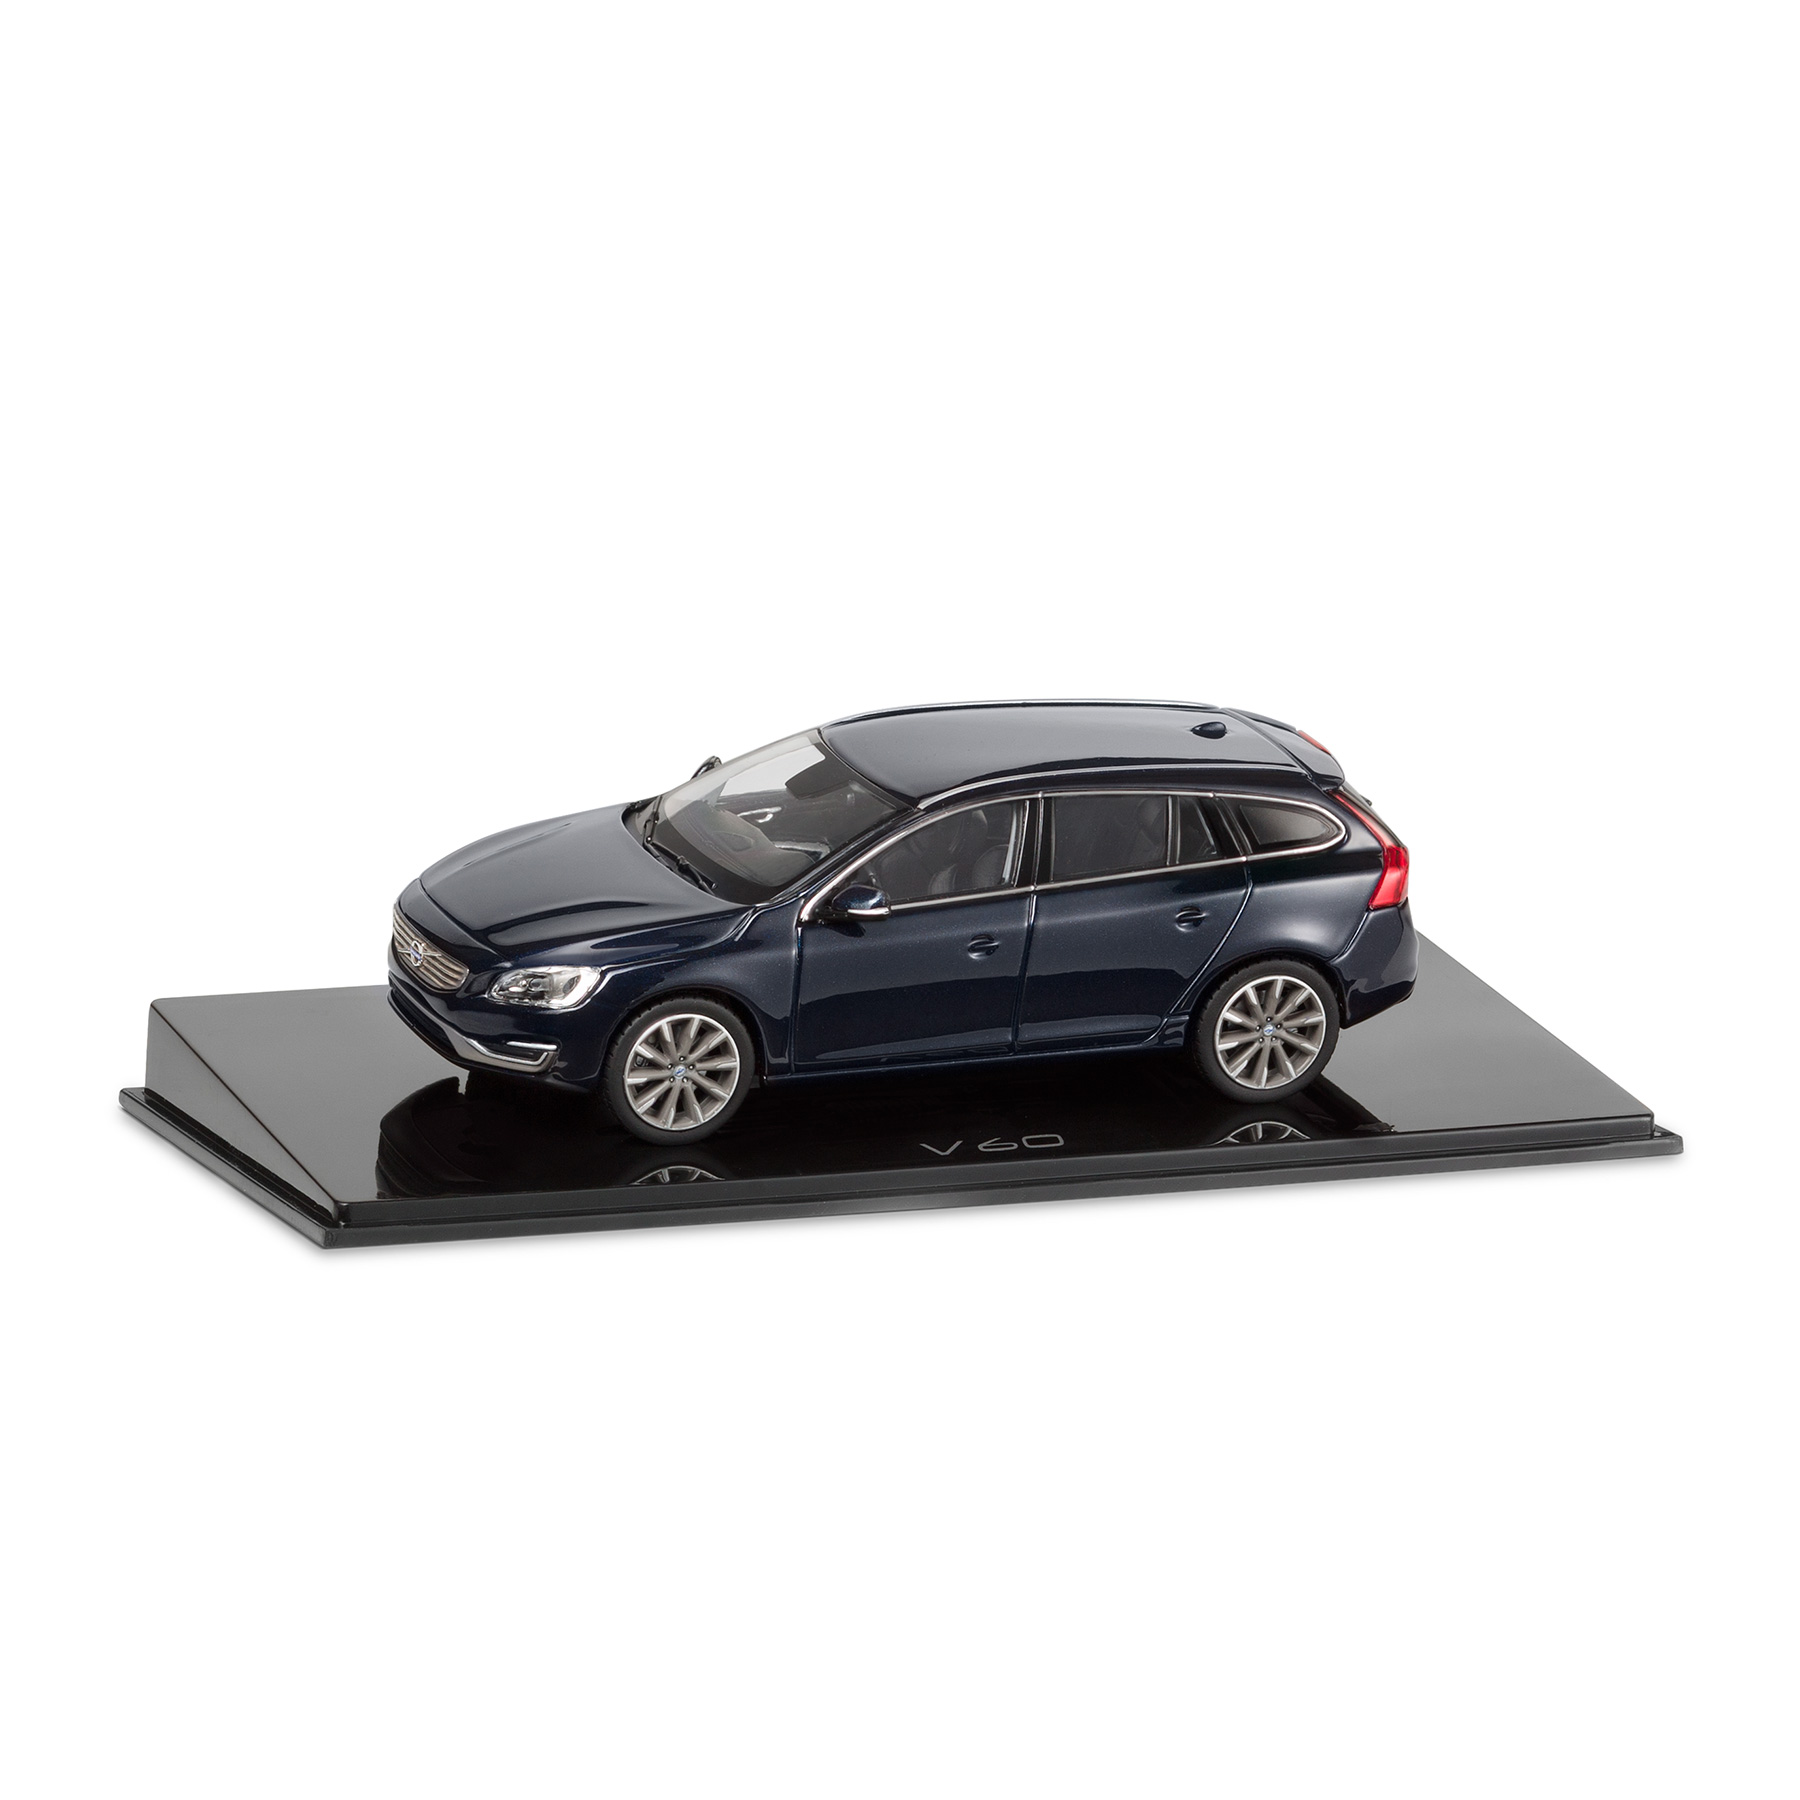 Volvo Car Lifestyle Collection Shop Model Cars Autos Post